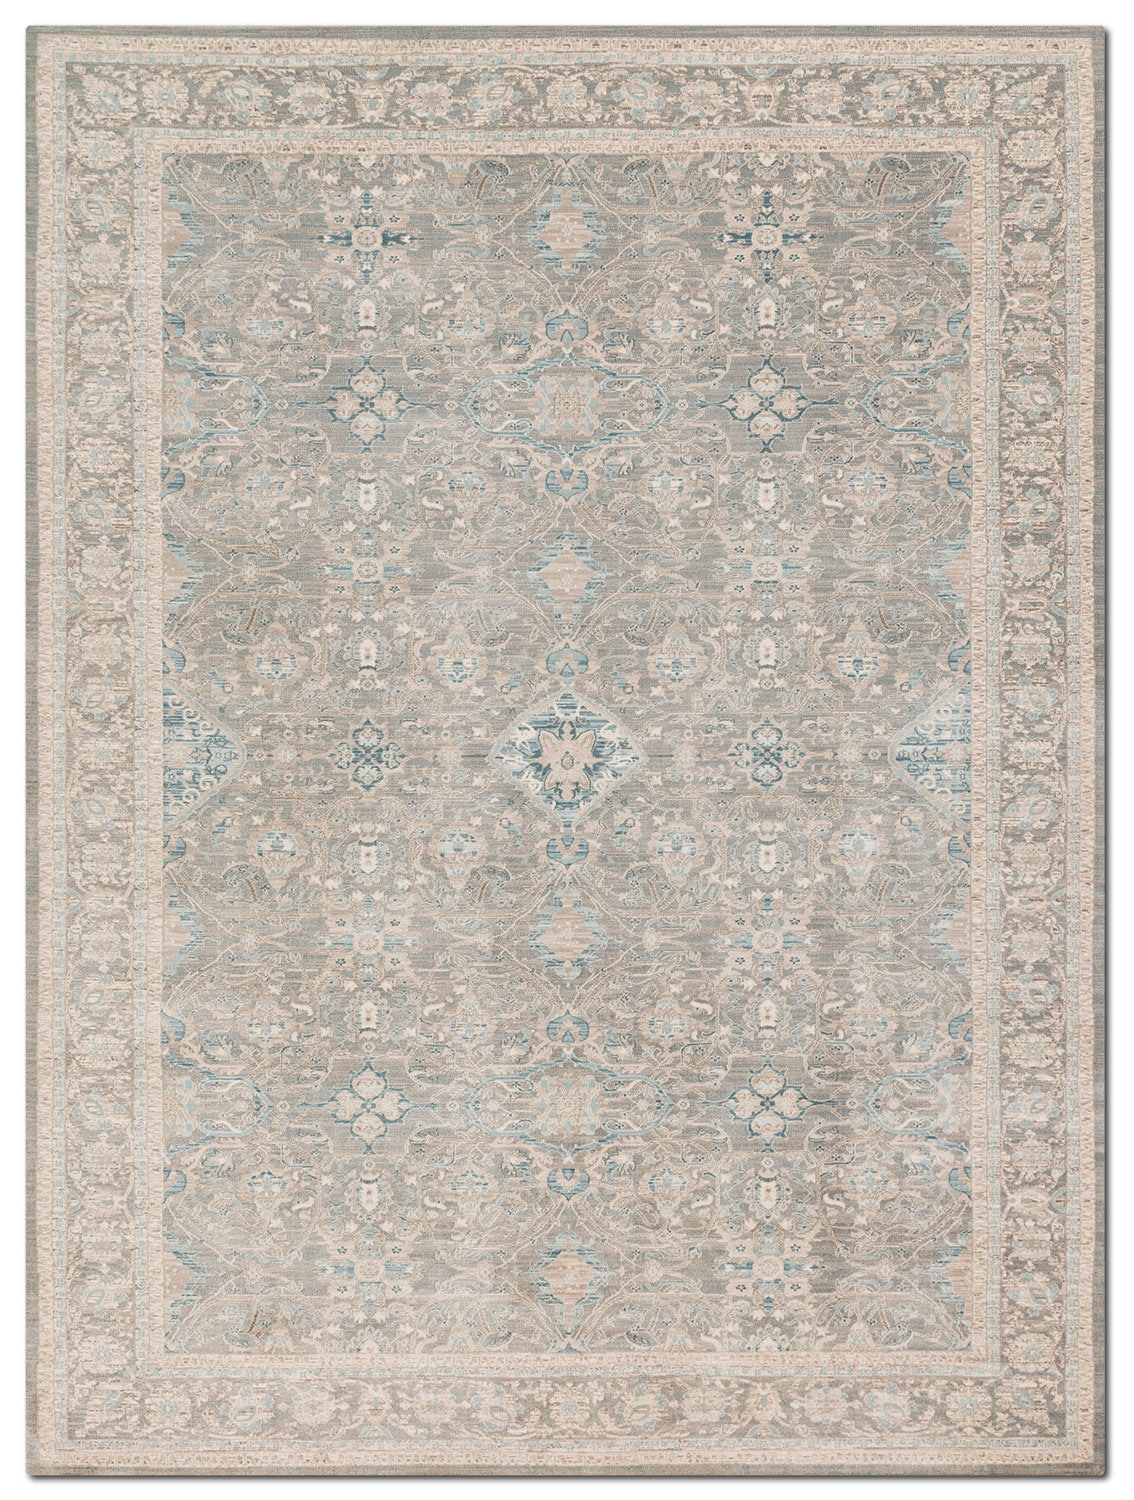 Rugs - Ella Rose 10' x 13' Rug - Steel